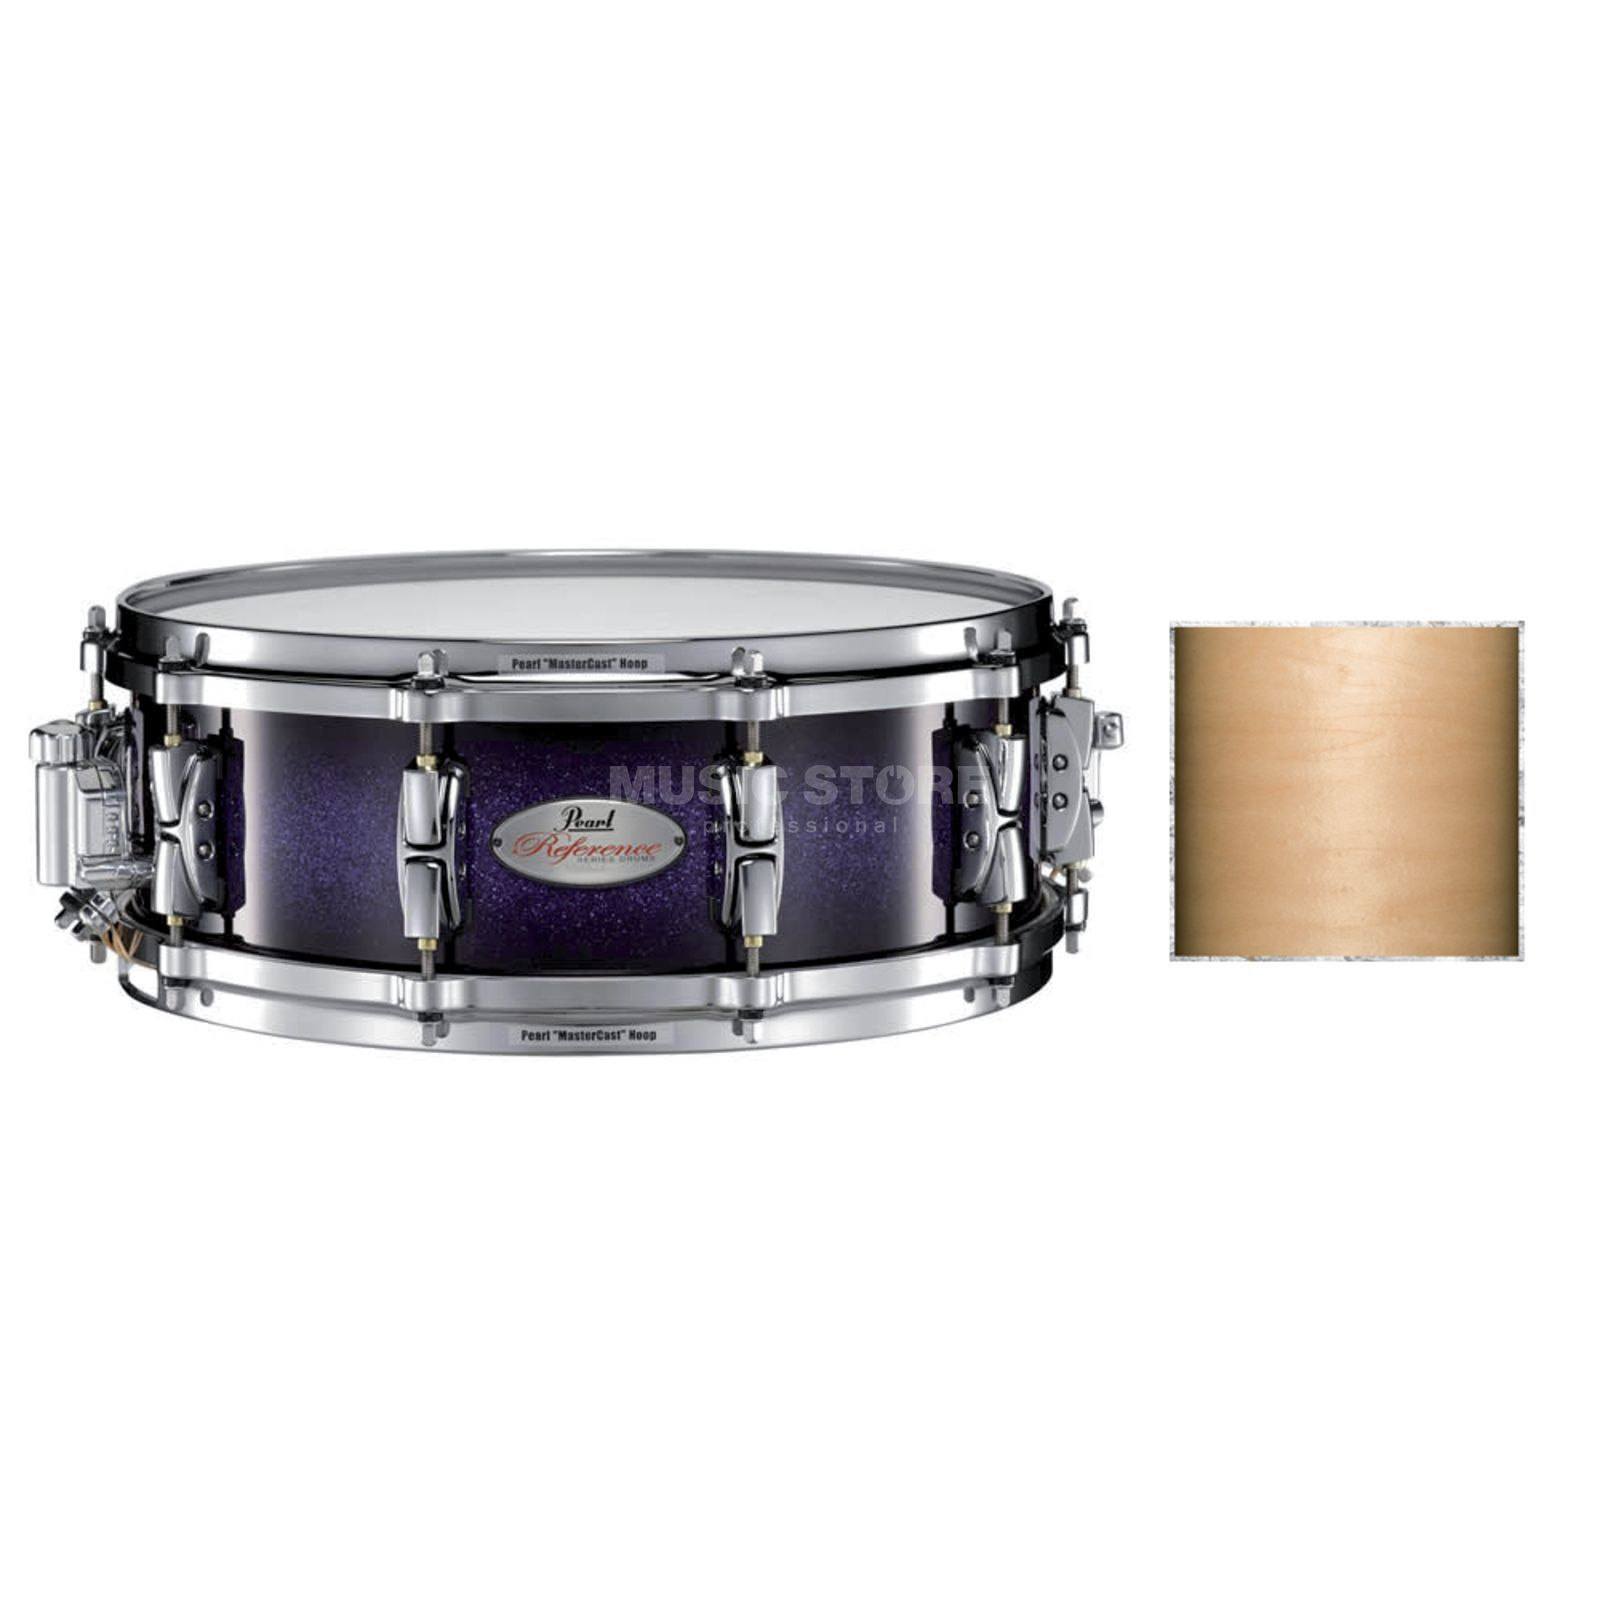 "Pearl RF1450S/C Reference Snare 14""x5"", Natural Maple #103 Product Image"